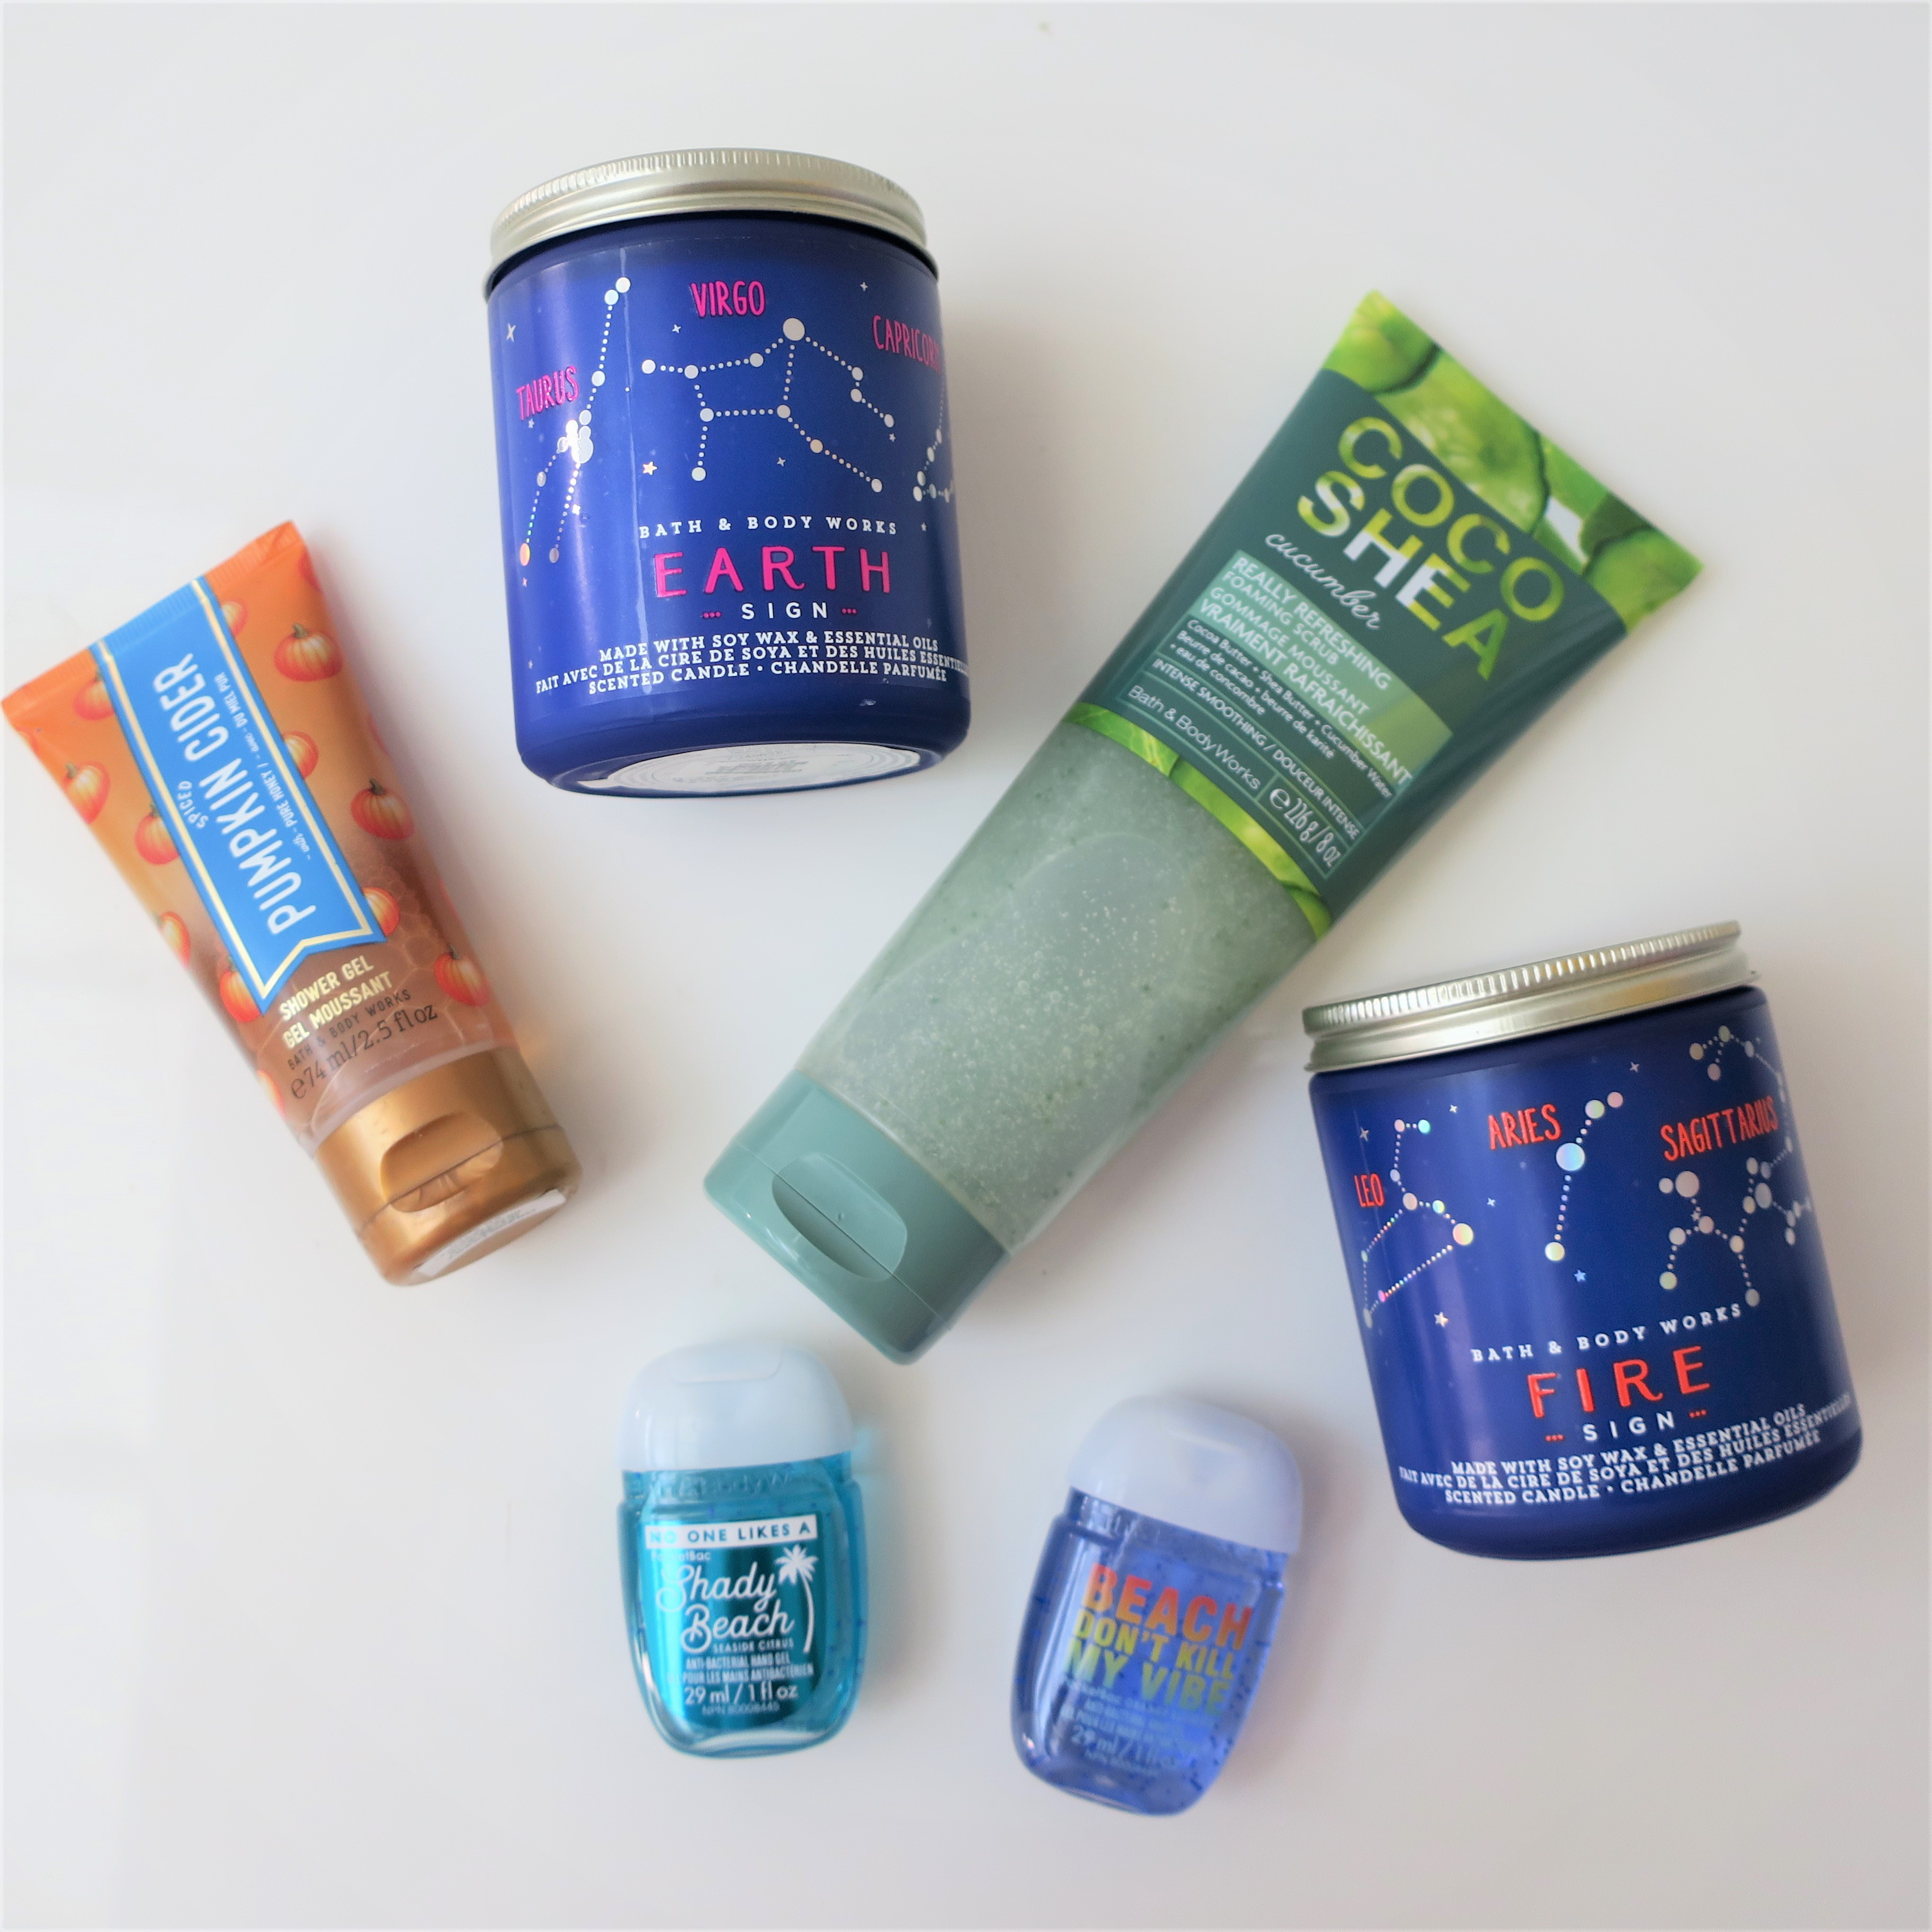 During My Visit To Bath And Body Works Here I Picked Up A Handful Of Really Fun Stuff X2 Zodiac Candles Deliciously Scented Shower